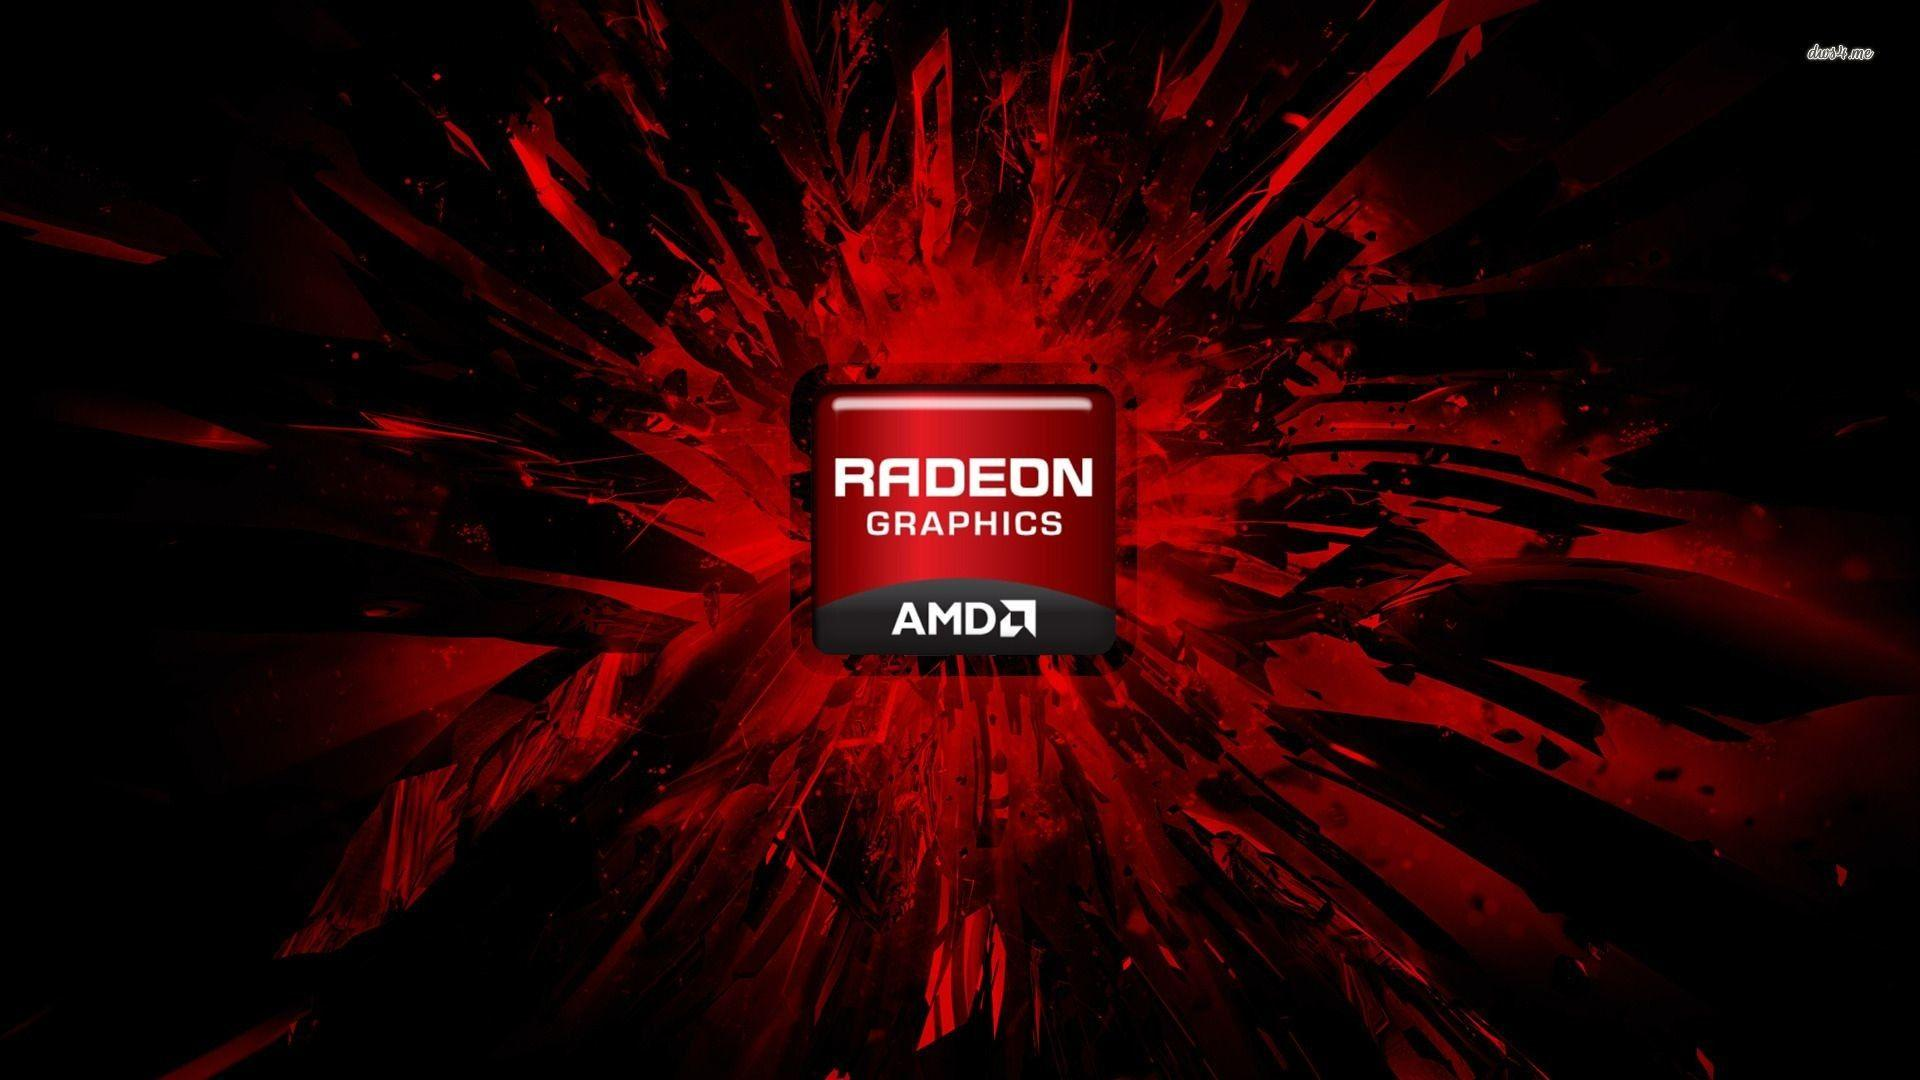 Amd Radeon Wallpapers 19x1080 Wallpaper Cave